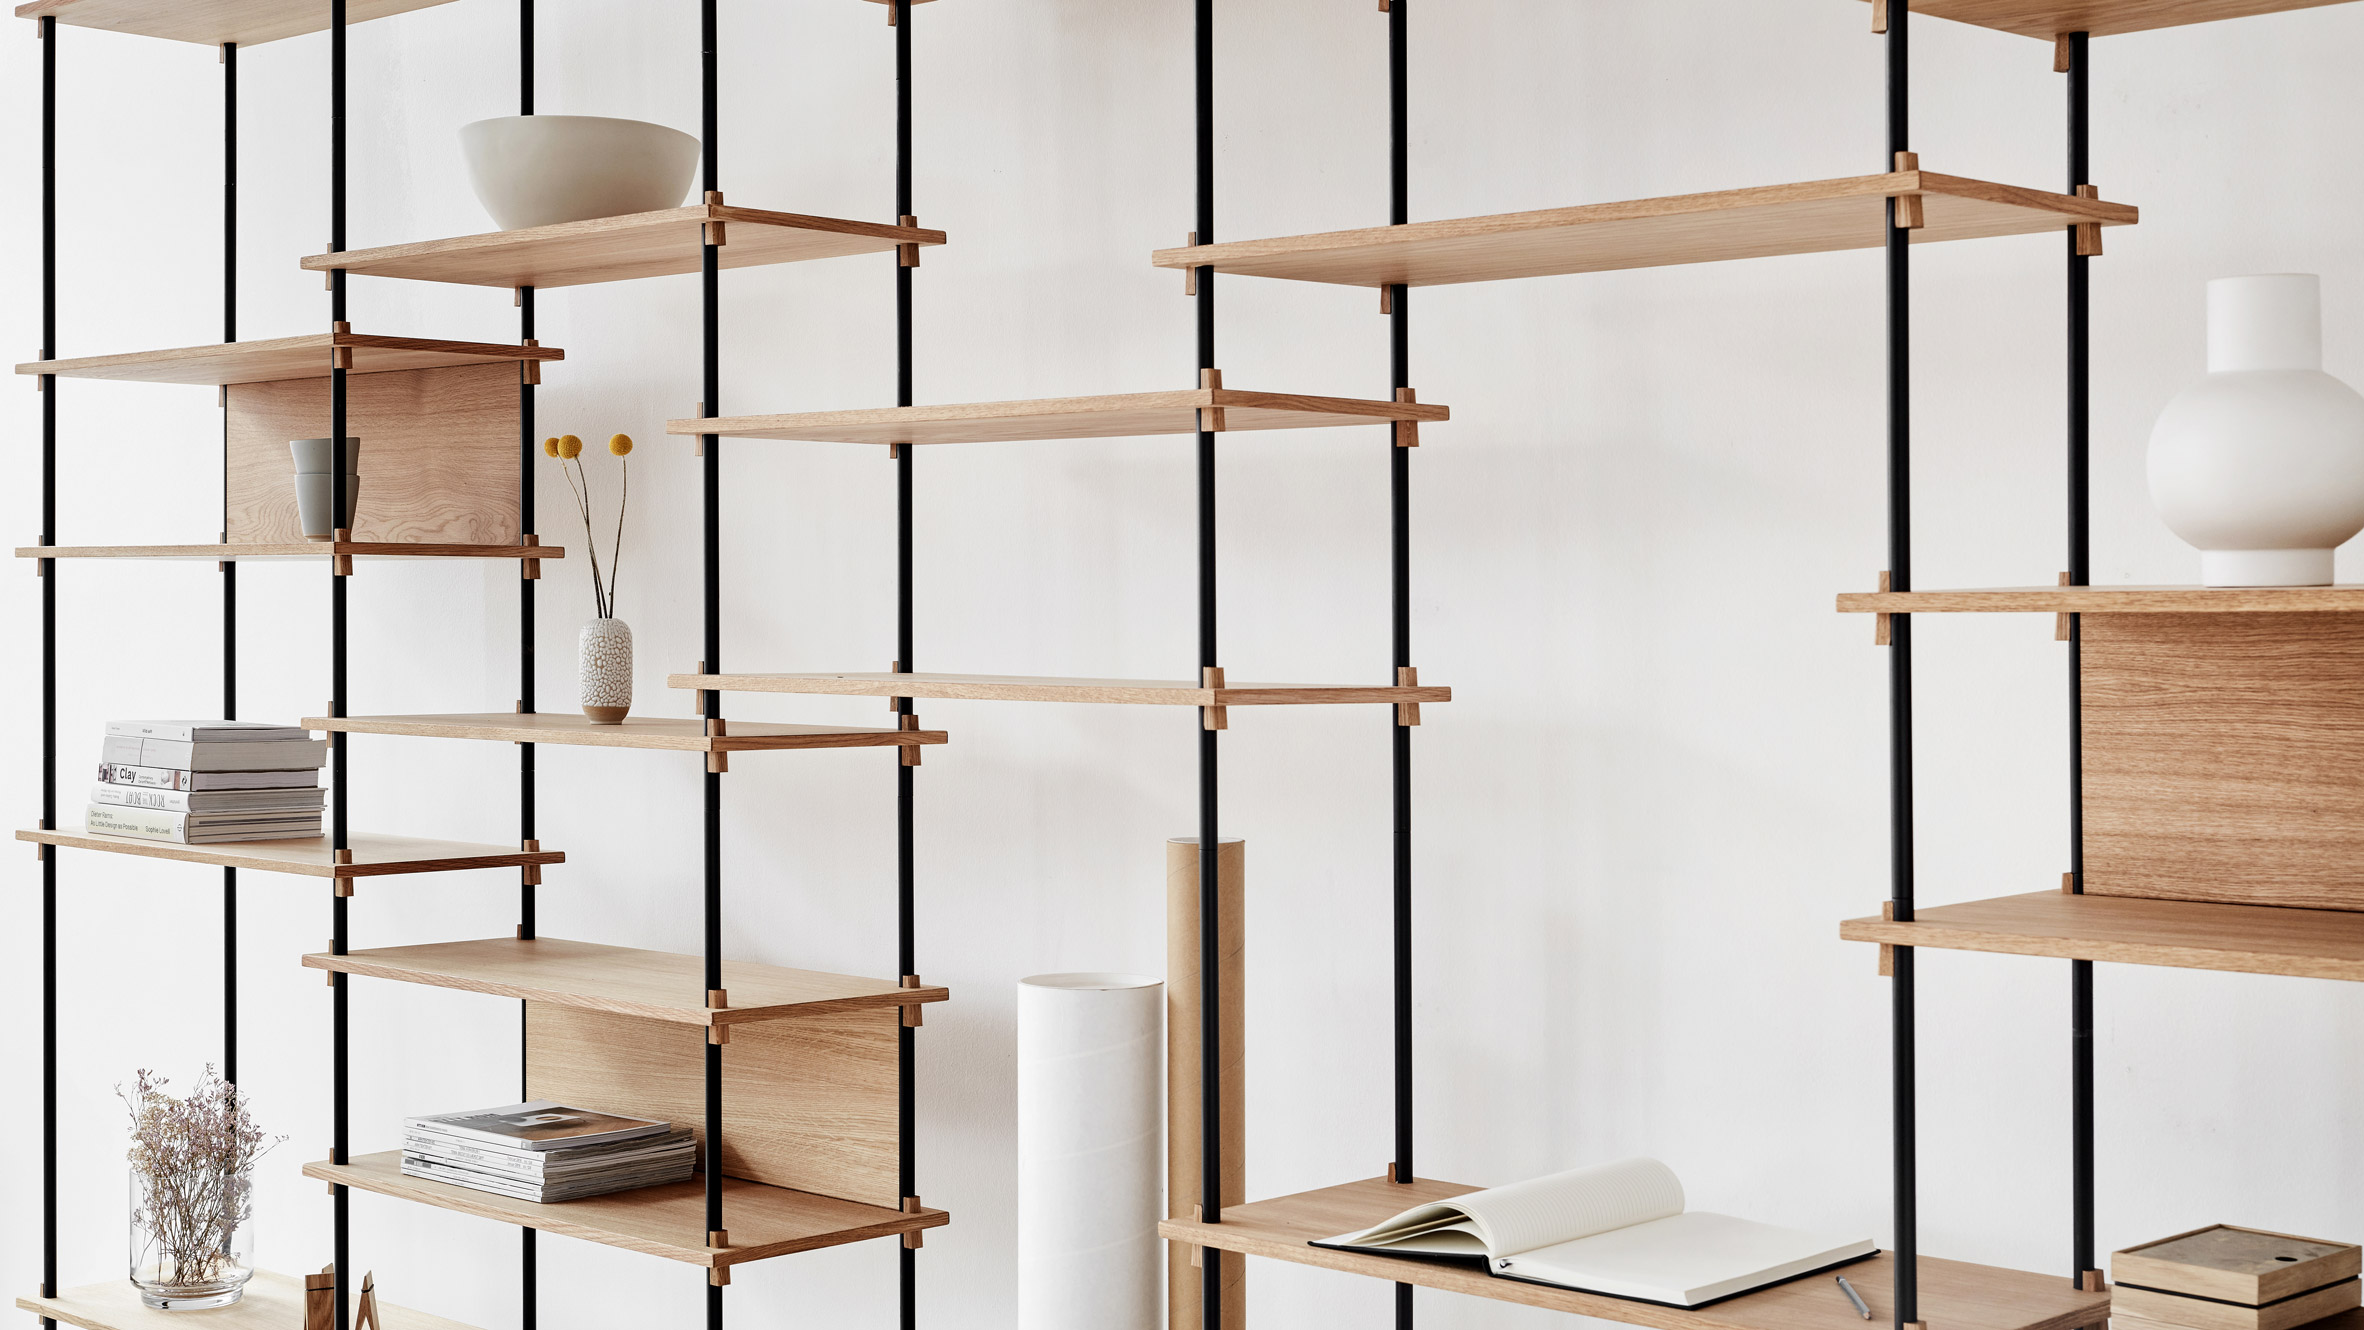 Moebe creates flexible shelving system that is held together by wooden wedges